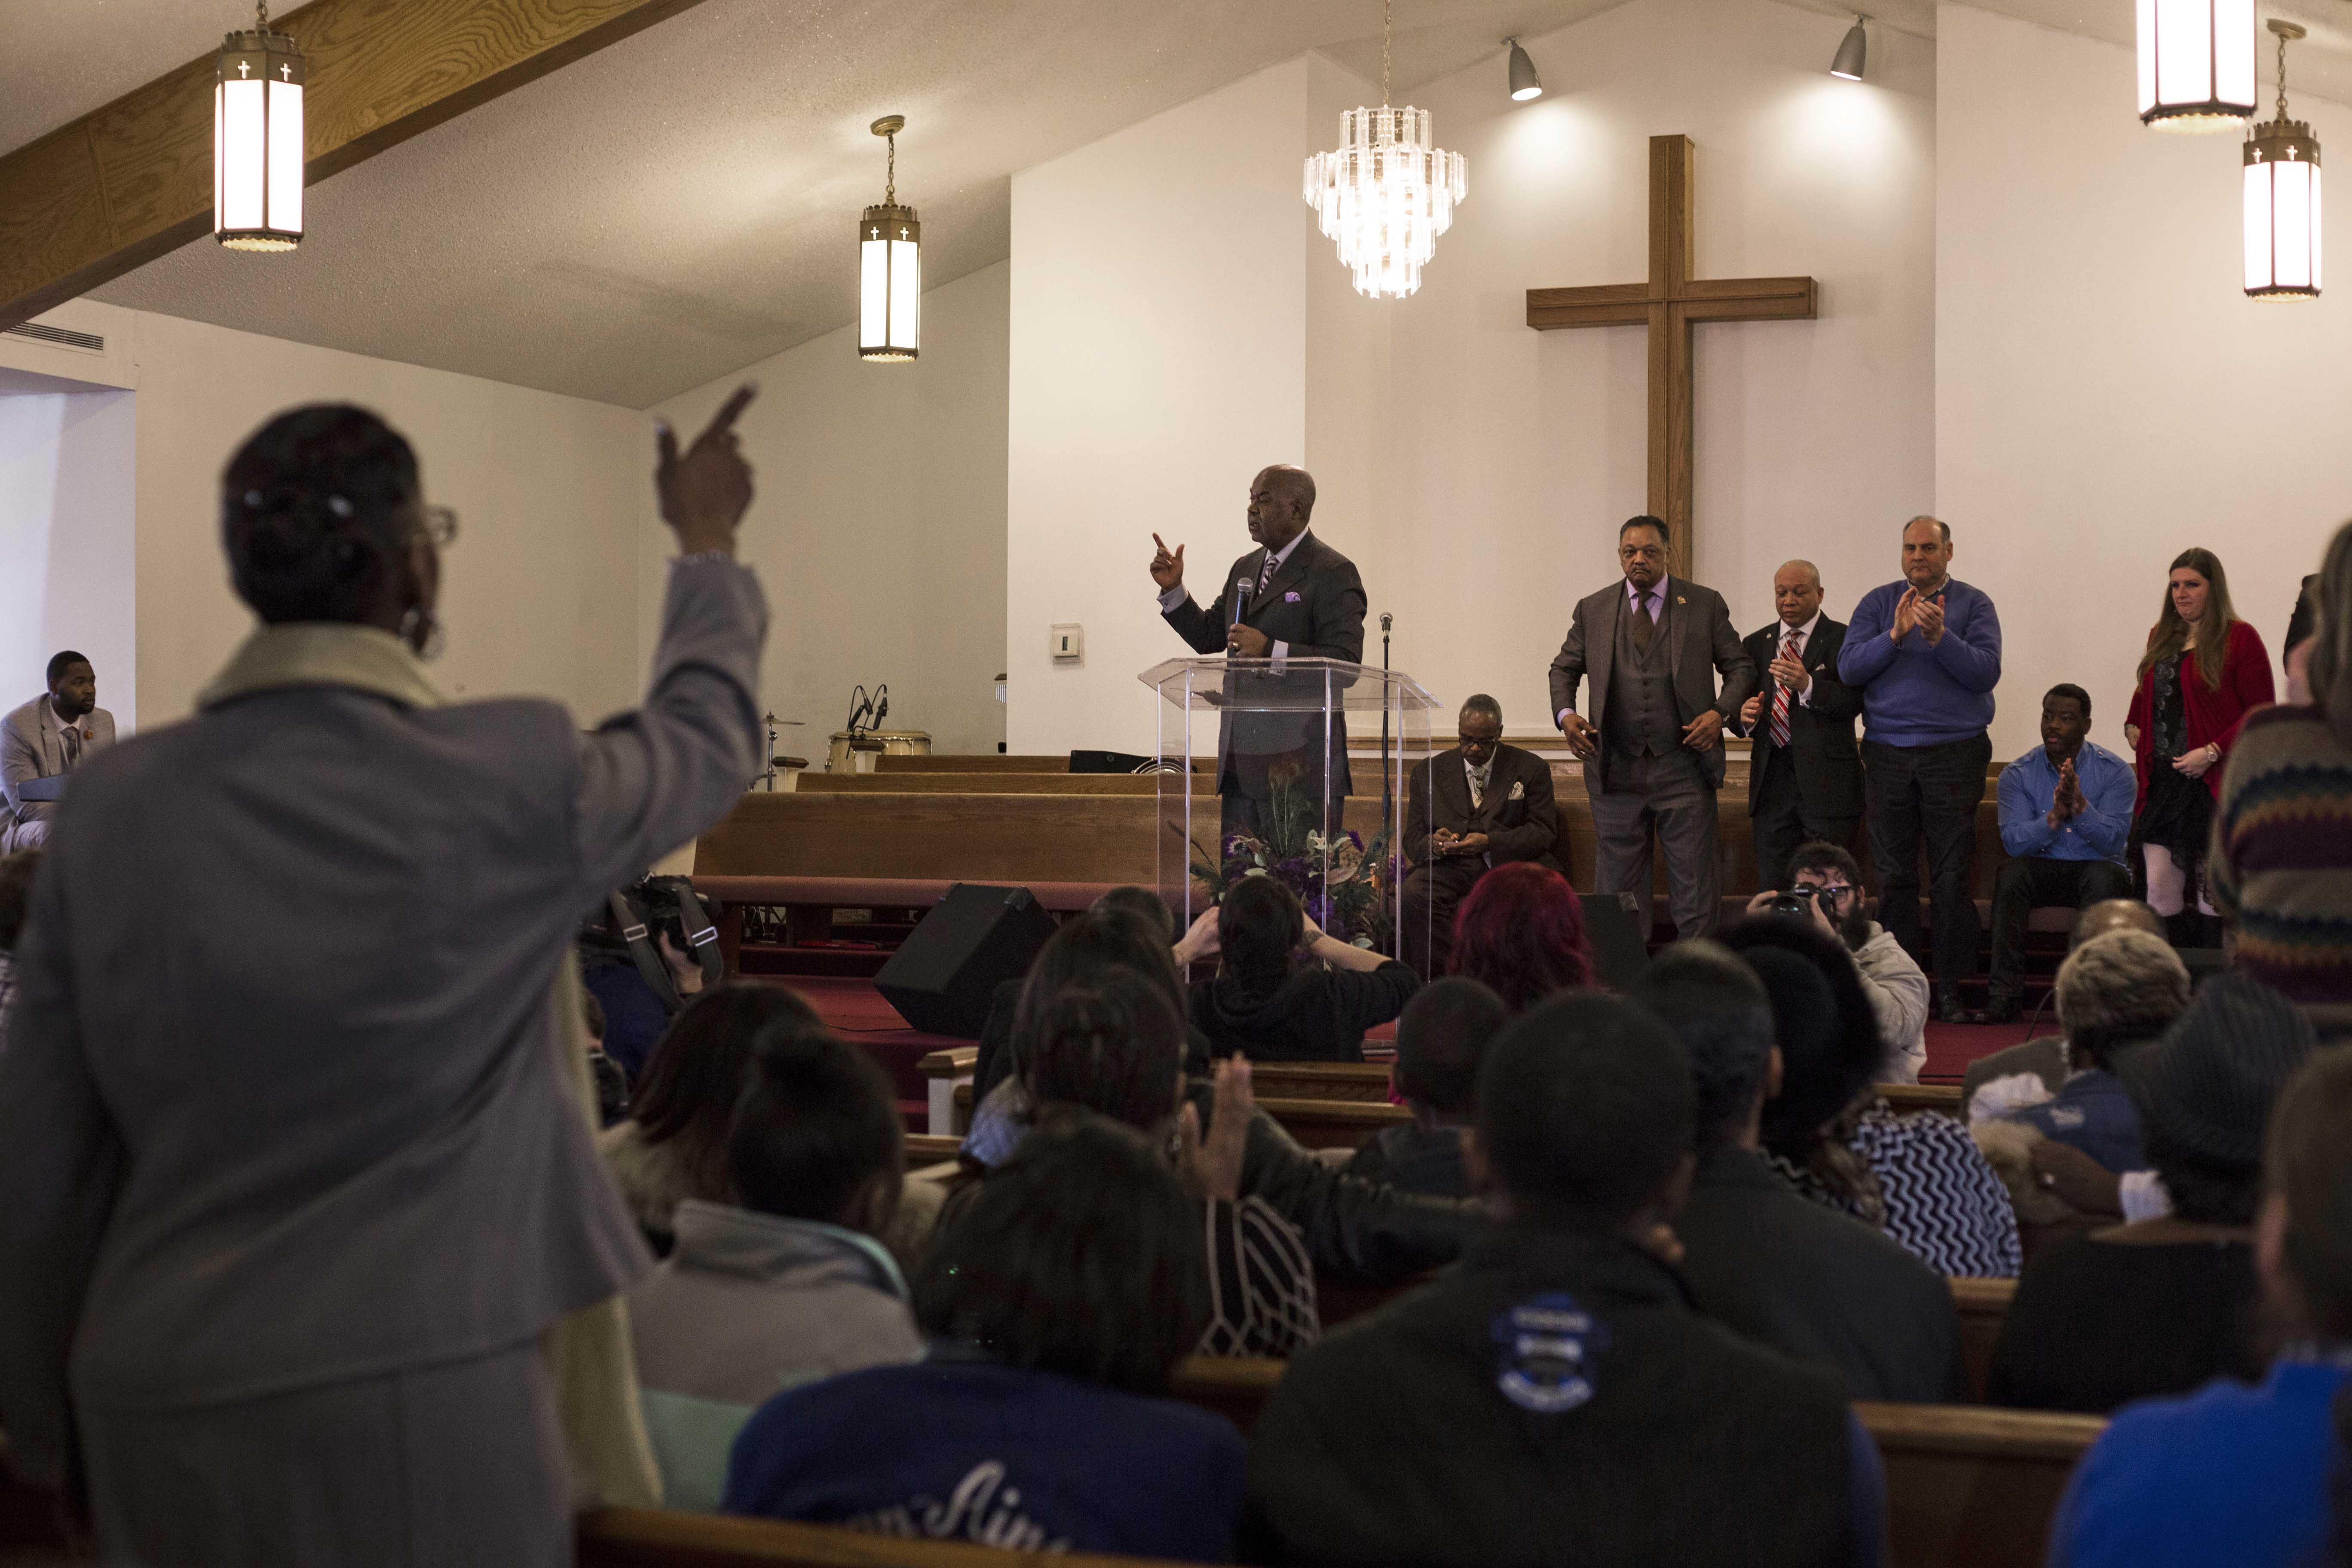 Resident's rise in agreement while attending a service discussing Flint's ongoing water crisis that invited civil right's activist Jesse Jackson, government leaders and local leaders at Heavenly Host Baptist Church in Flint's north side on January 17, 2016. (Brittany Greeson/GroundTruth)